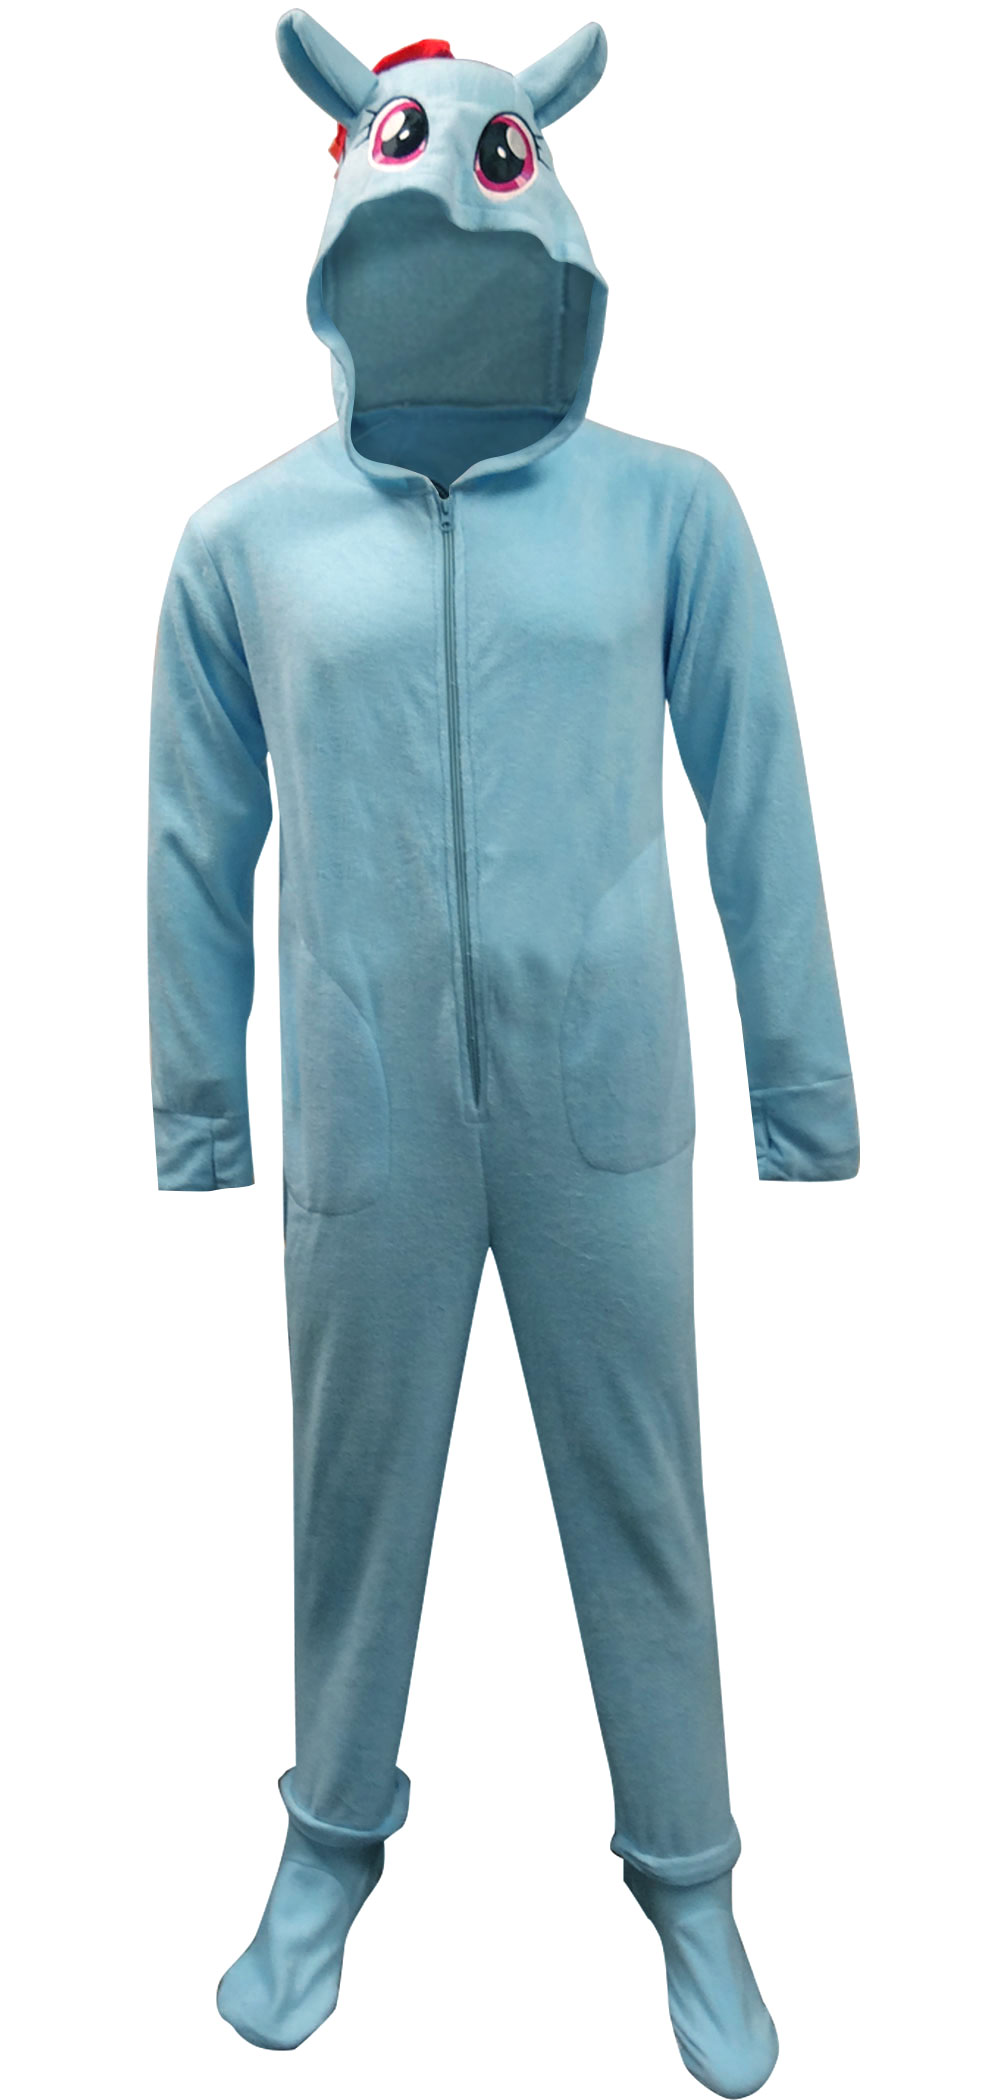 My Little Pony - My Little Pony Rainbow Dash Fleece One Piece Footie Pajama  - Walmart.com 742885295